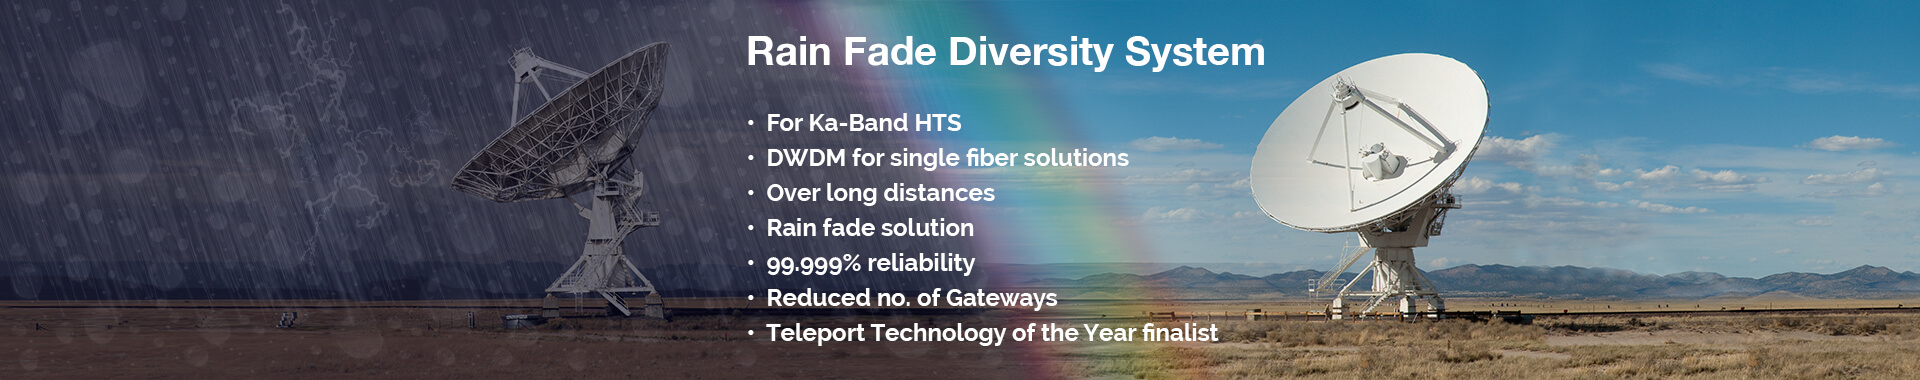 ViaLite Rain Fade Diversity System - for Ka-Band HTS, DWDM for single fiber, long distances, teleport technology of the year...